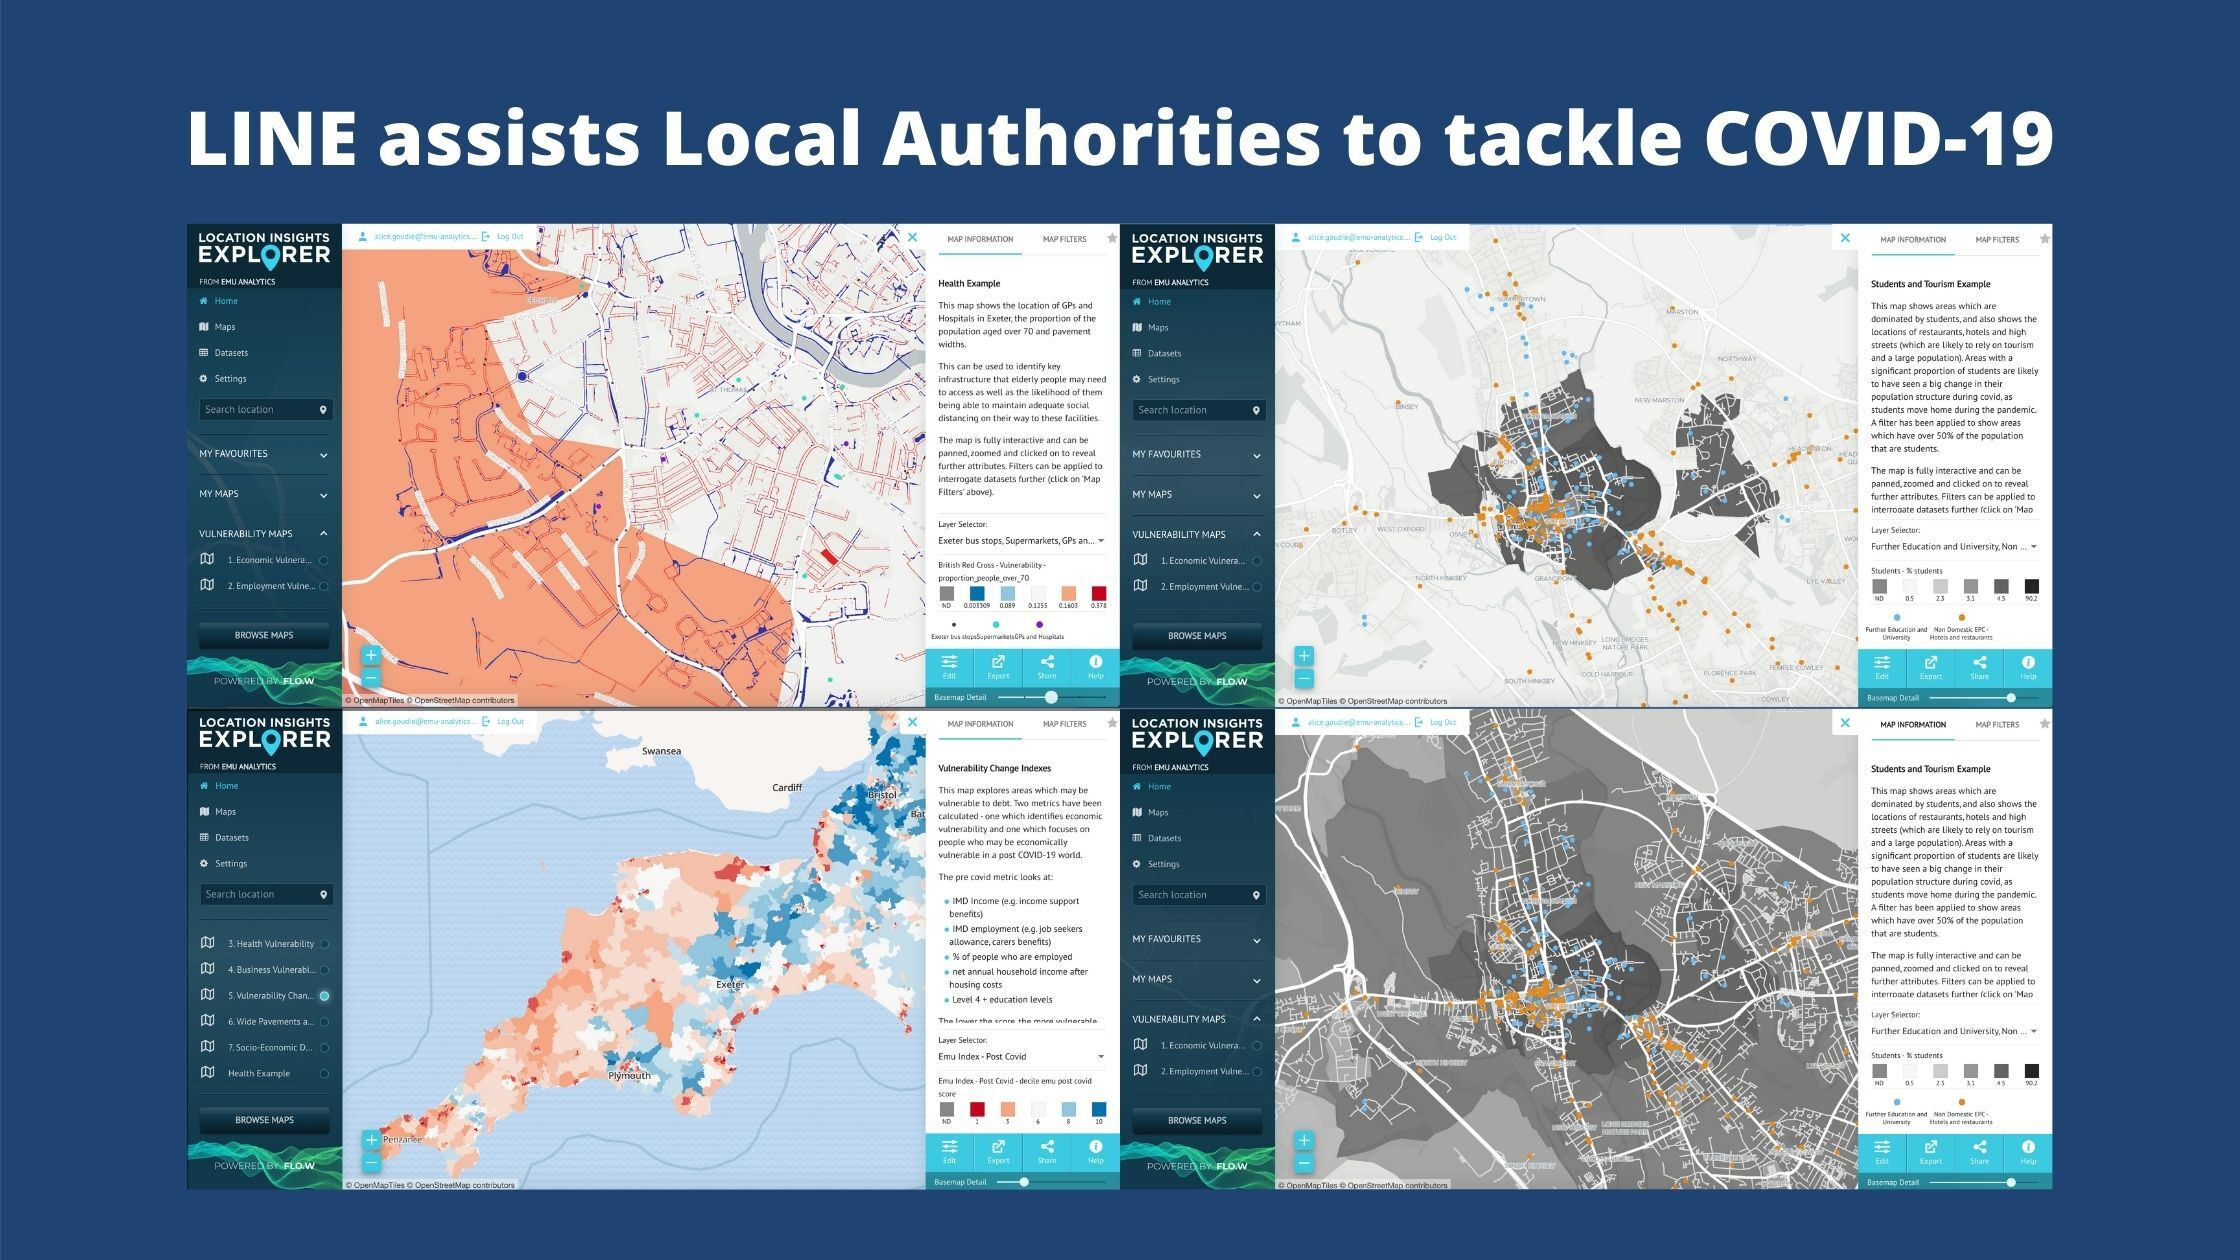 Location Insights Explorer For Local Authorities to Respond to COVID-19 Challenges